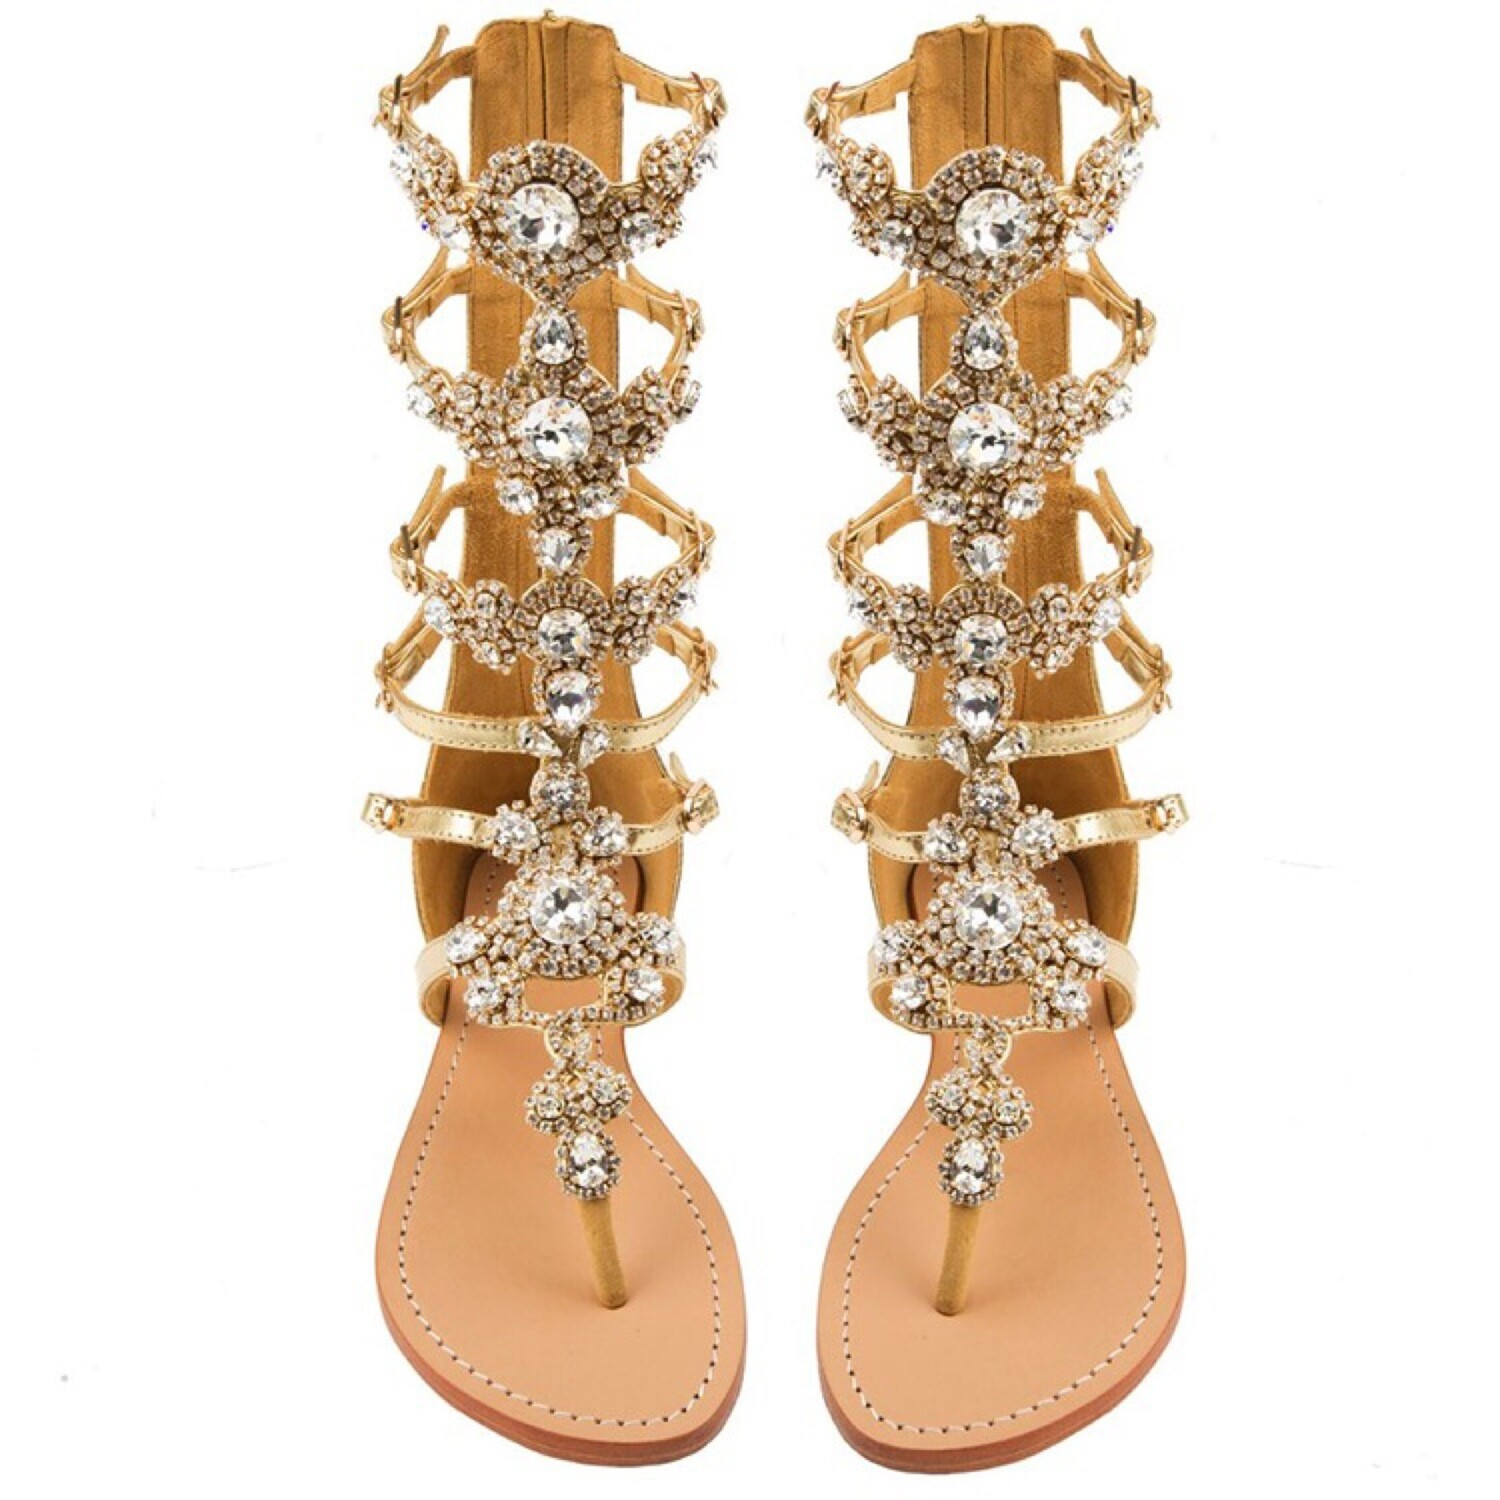 Luxury Gold Flat Sandals